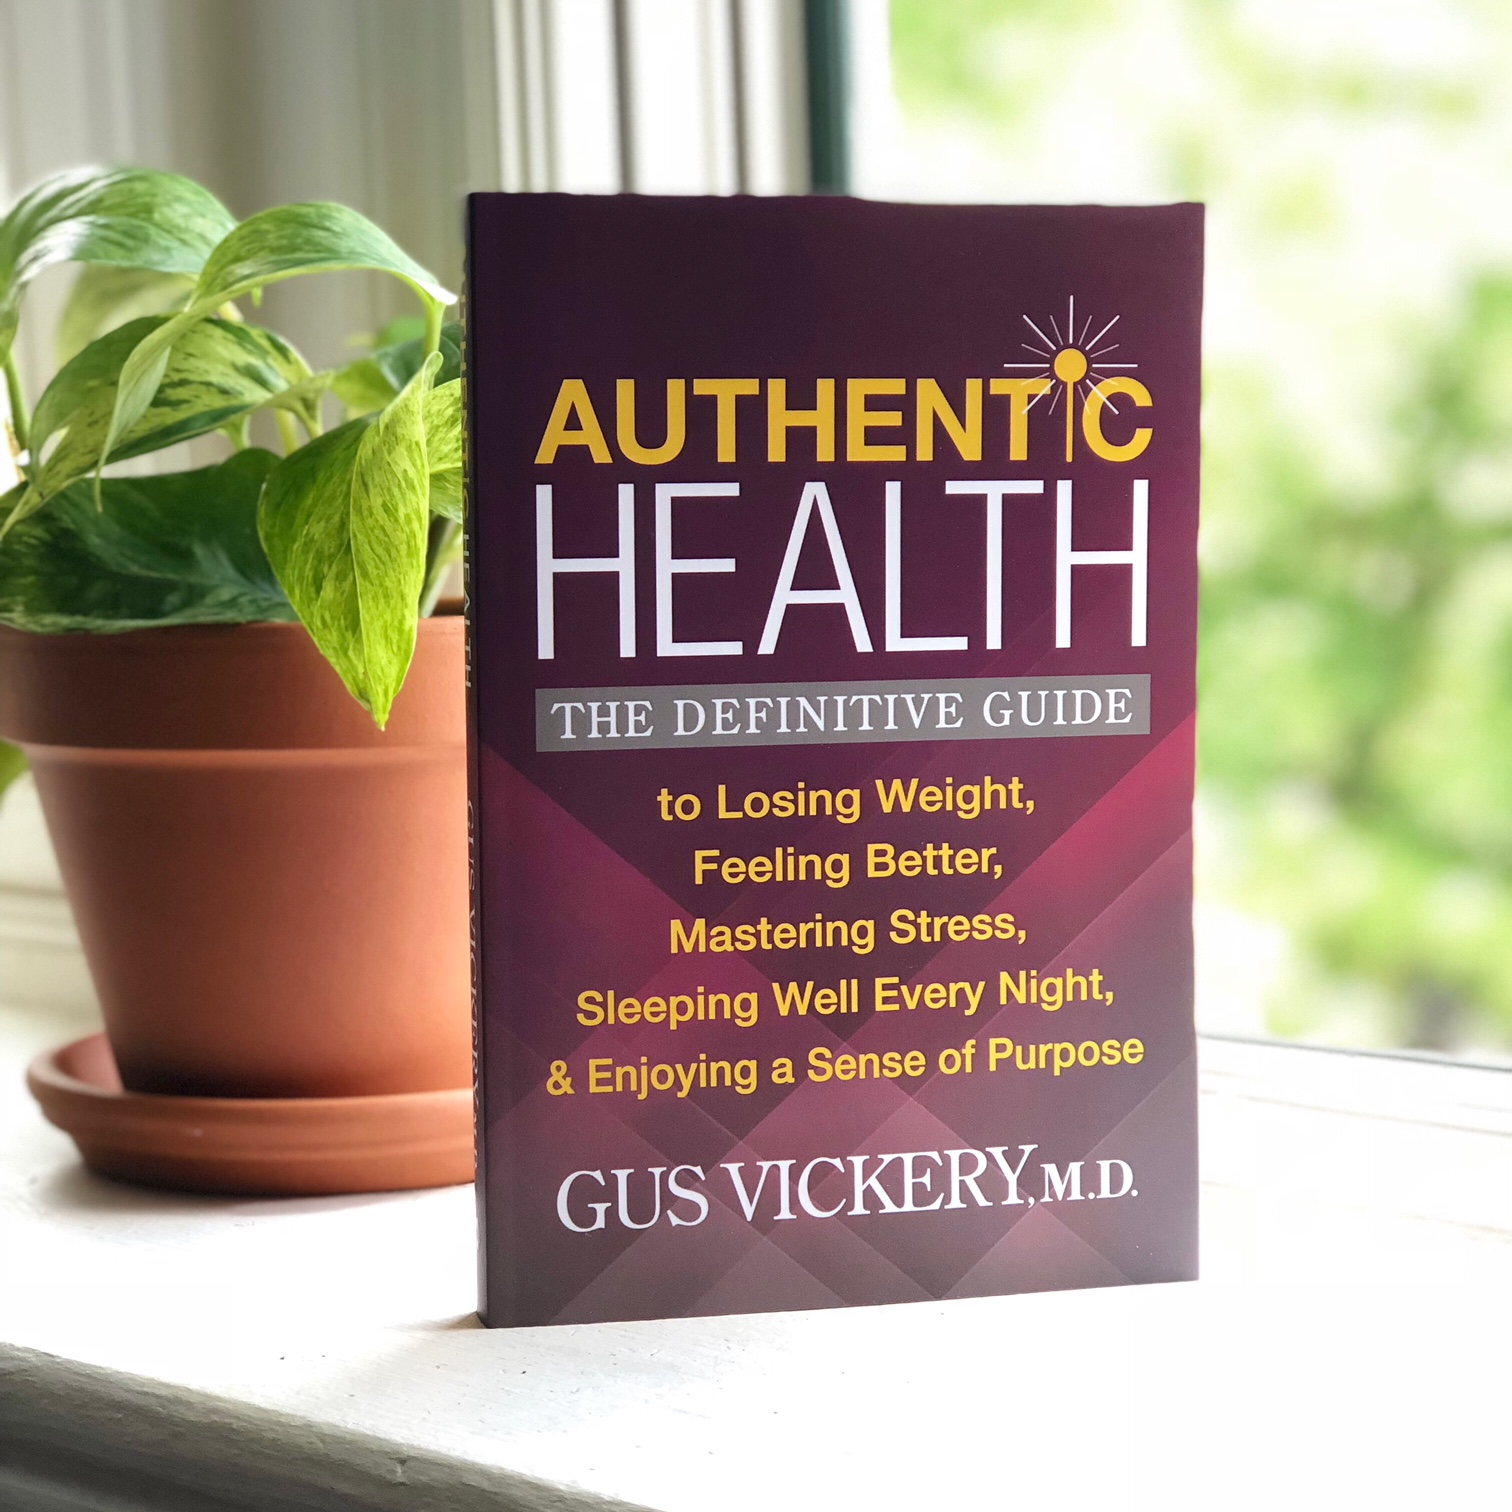 AUTHENTIC HEALTH - In this straightforward, easy-to-use roadmap back to good health, Dr. Gus Vickery lays out a comprehensive program for addressing the habits and conditions that drive many of America's painful chronic conditions.